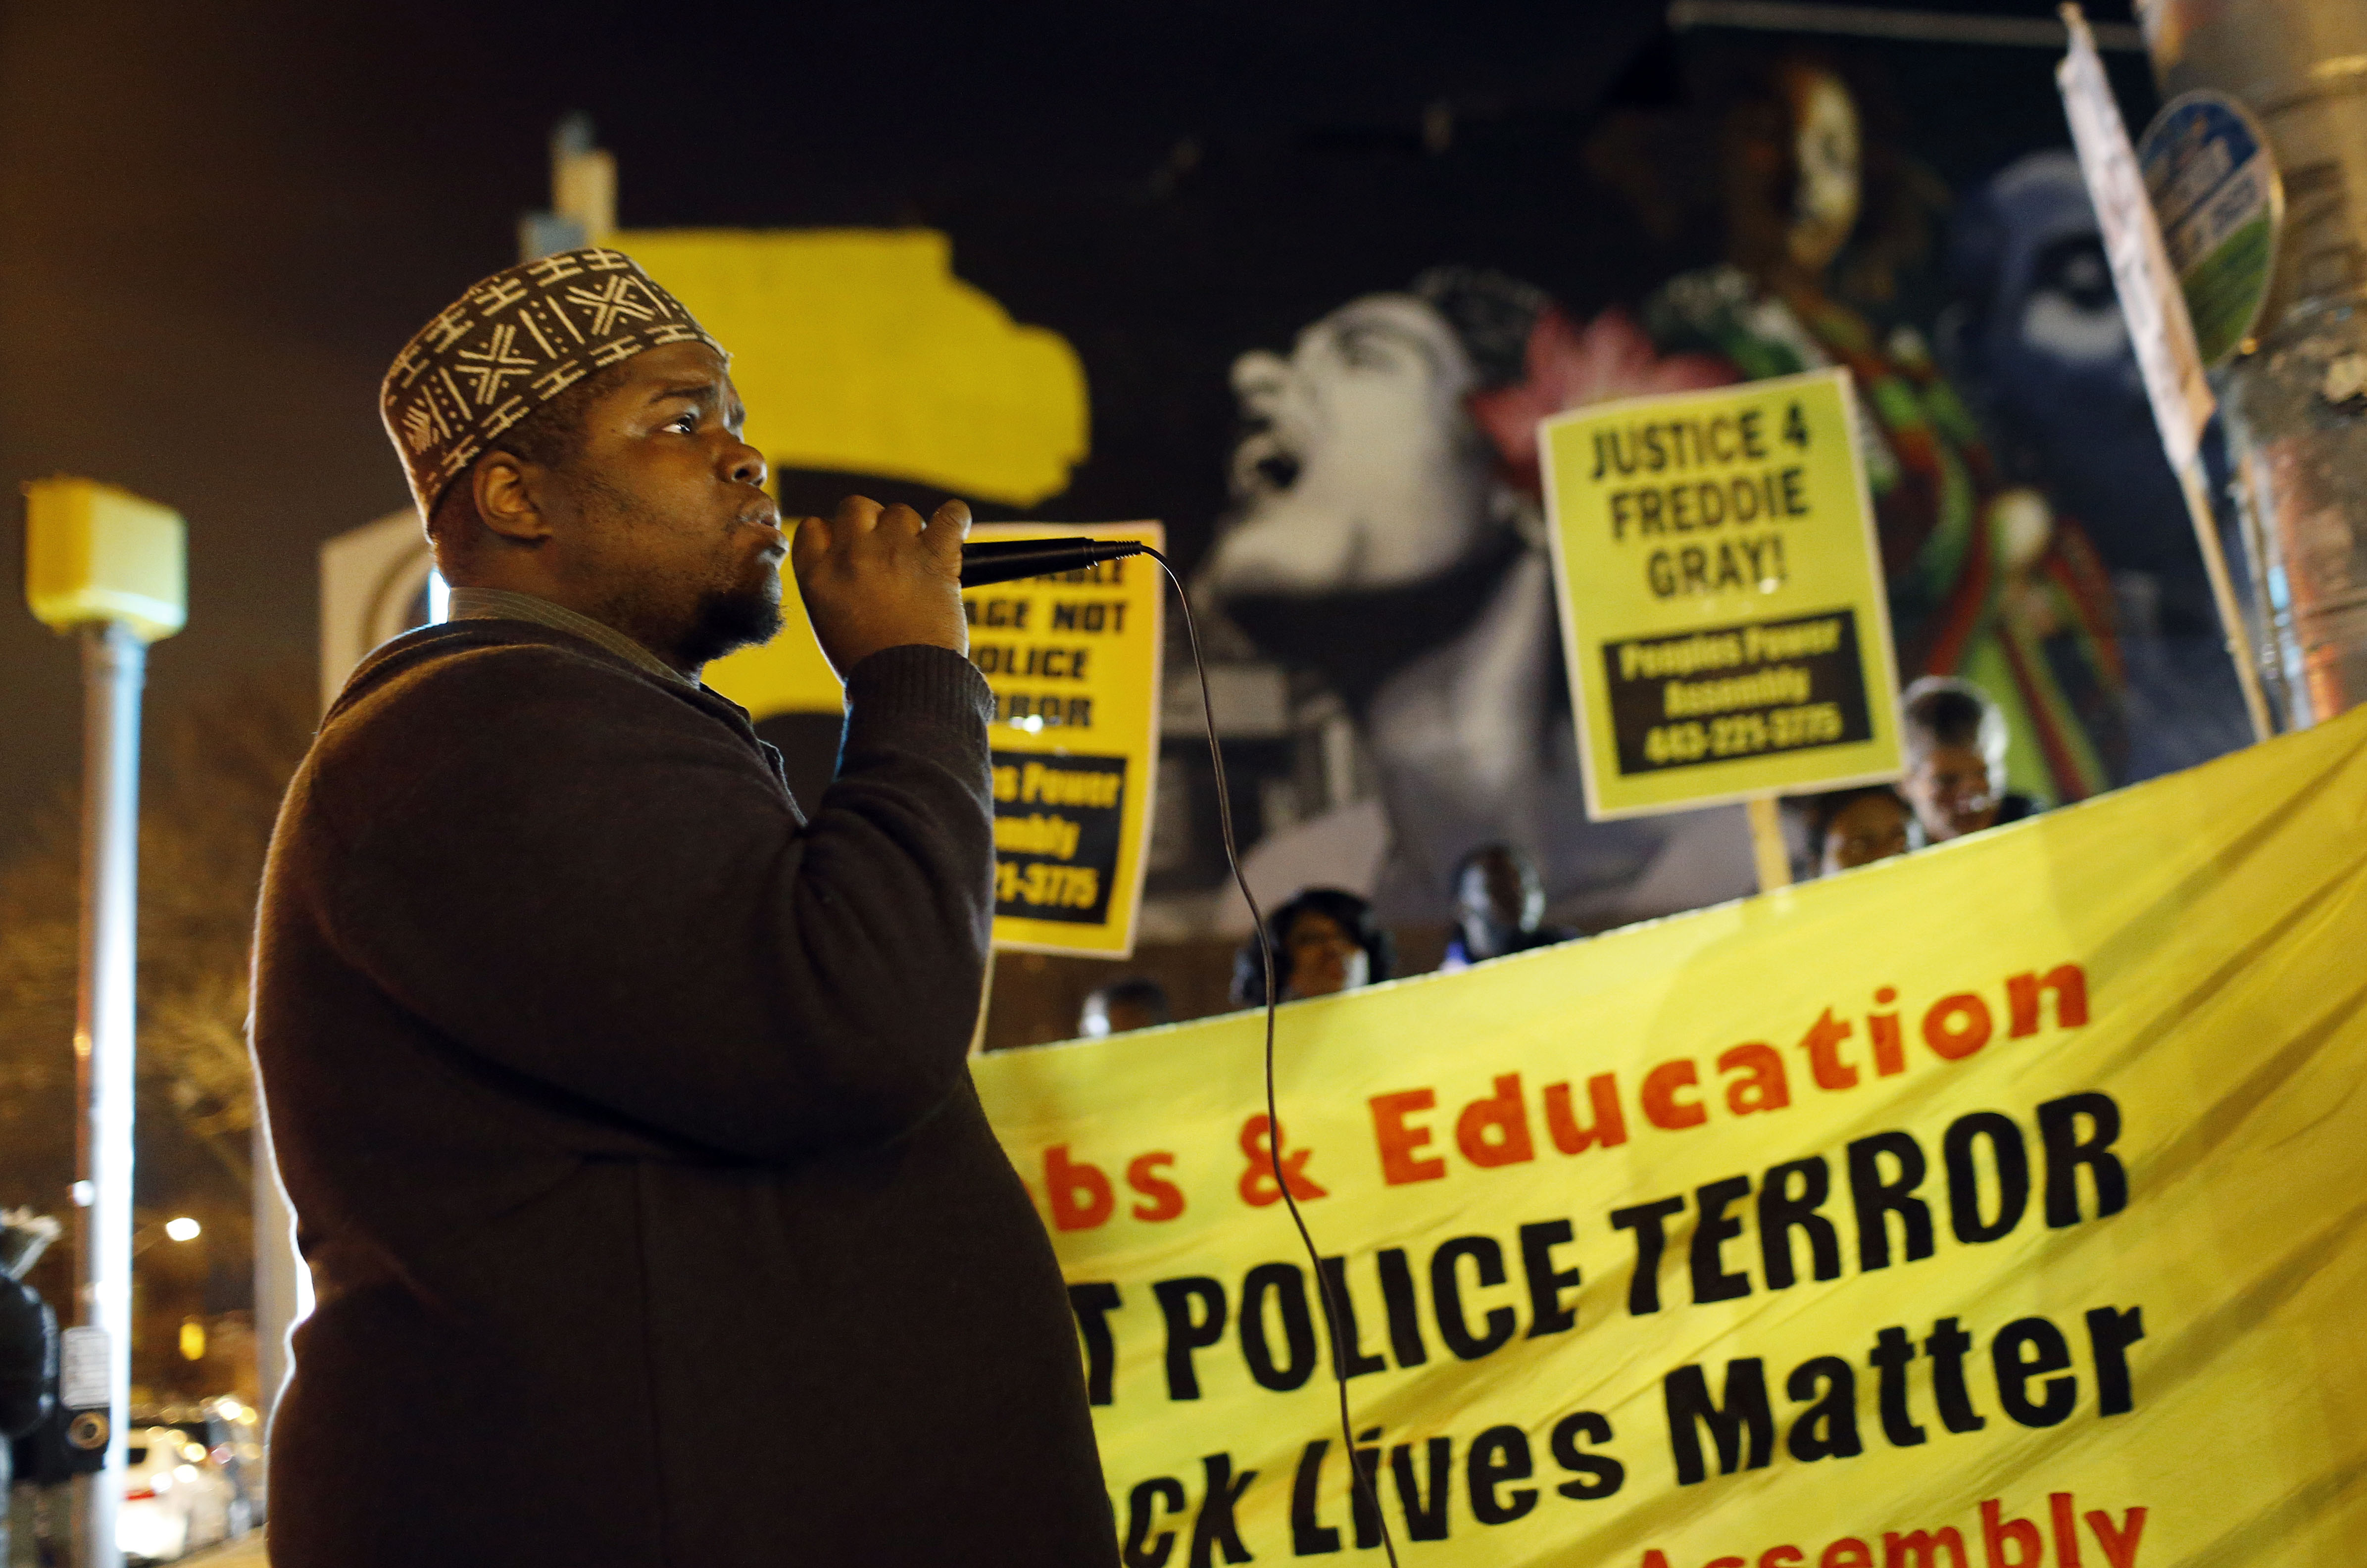 The Rev. C.D. Witherspoon speaks during a peaceful protest at the intersection of North and Pennsylvania Avenues, Wednesday, Dec. 16, 2015, in Baltimore, the site of unrest following the funeral of Freddie Gray. Peaceful protests took place in response to a hung jury and mistrial for Officer William Porter, one of six Baltimore city police officers charged in connection to Gray's death. (AP Photo/Patrick Semansky)